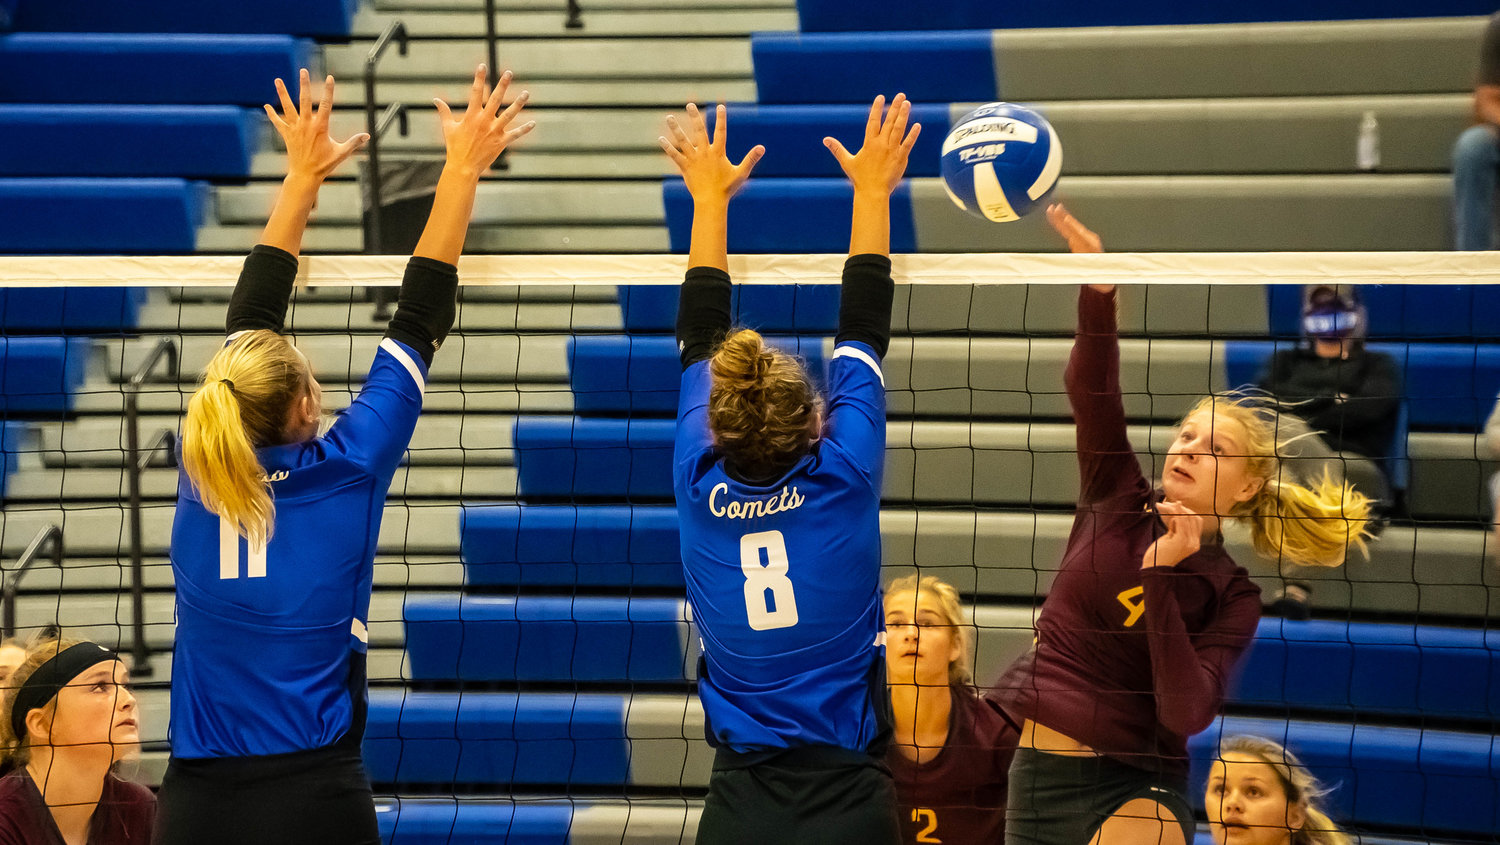 Averi Goodale and Brooklyn Buysse go up for a block in tournament action.